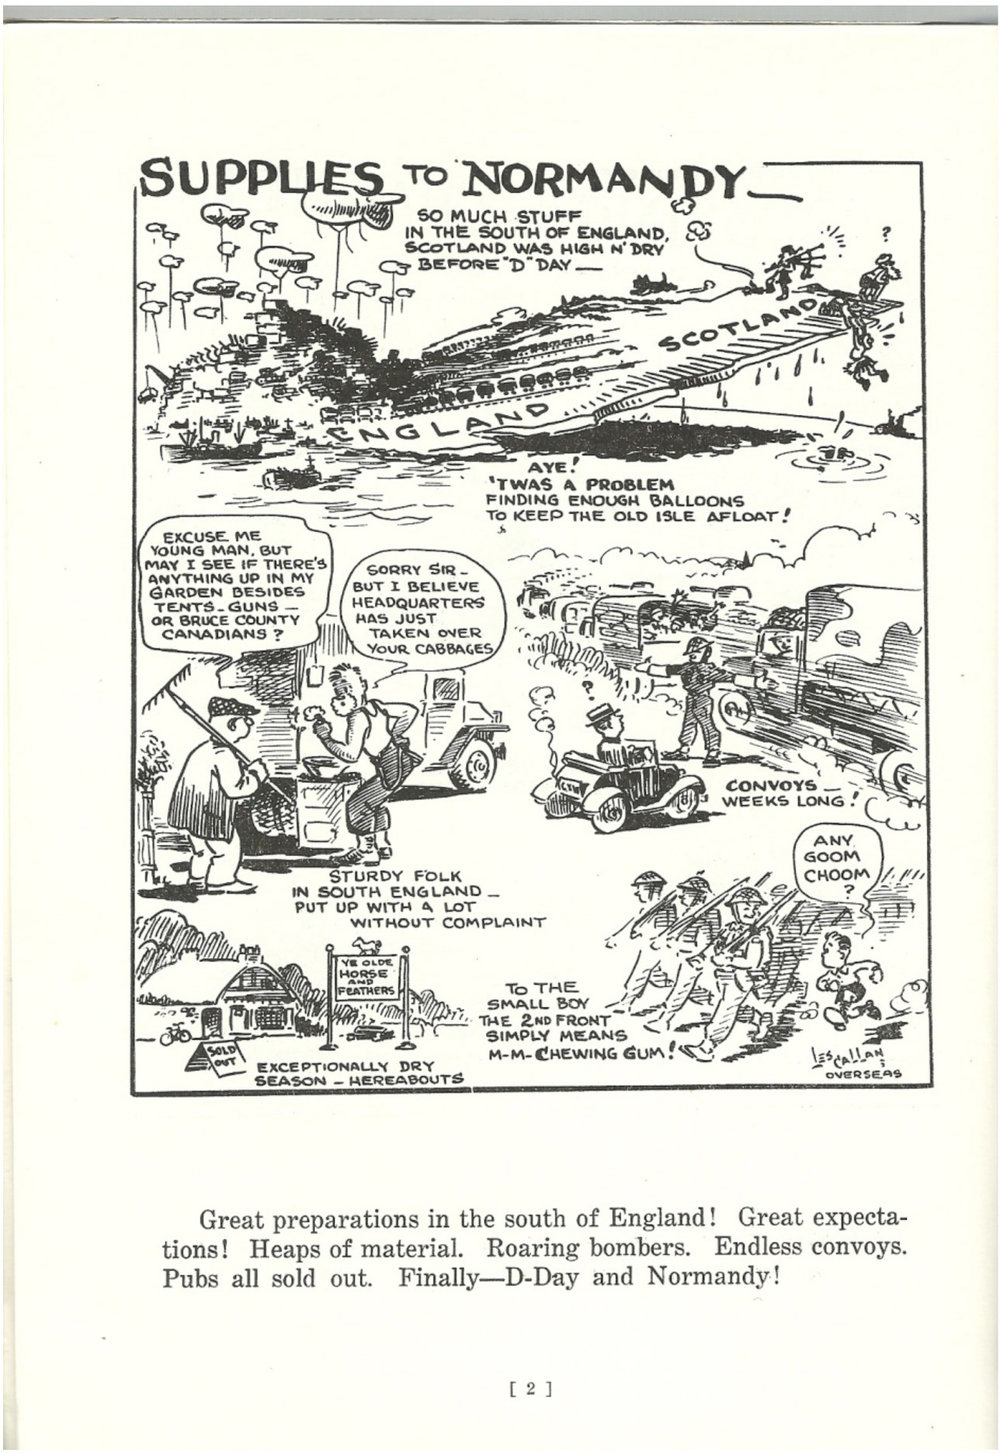 "One of Les Callan's earliest cartoons was about all of the preparations for the attack on D-Day. The caption below the cartoon read:  ""Supplies to Normandy! Great preparations in the south of England! Great expectations! Heaps of material. Roaring bombers. Endless convoys. Pubs all sold out. Finally — D-Day and Normandy!"""